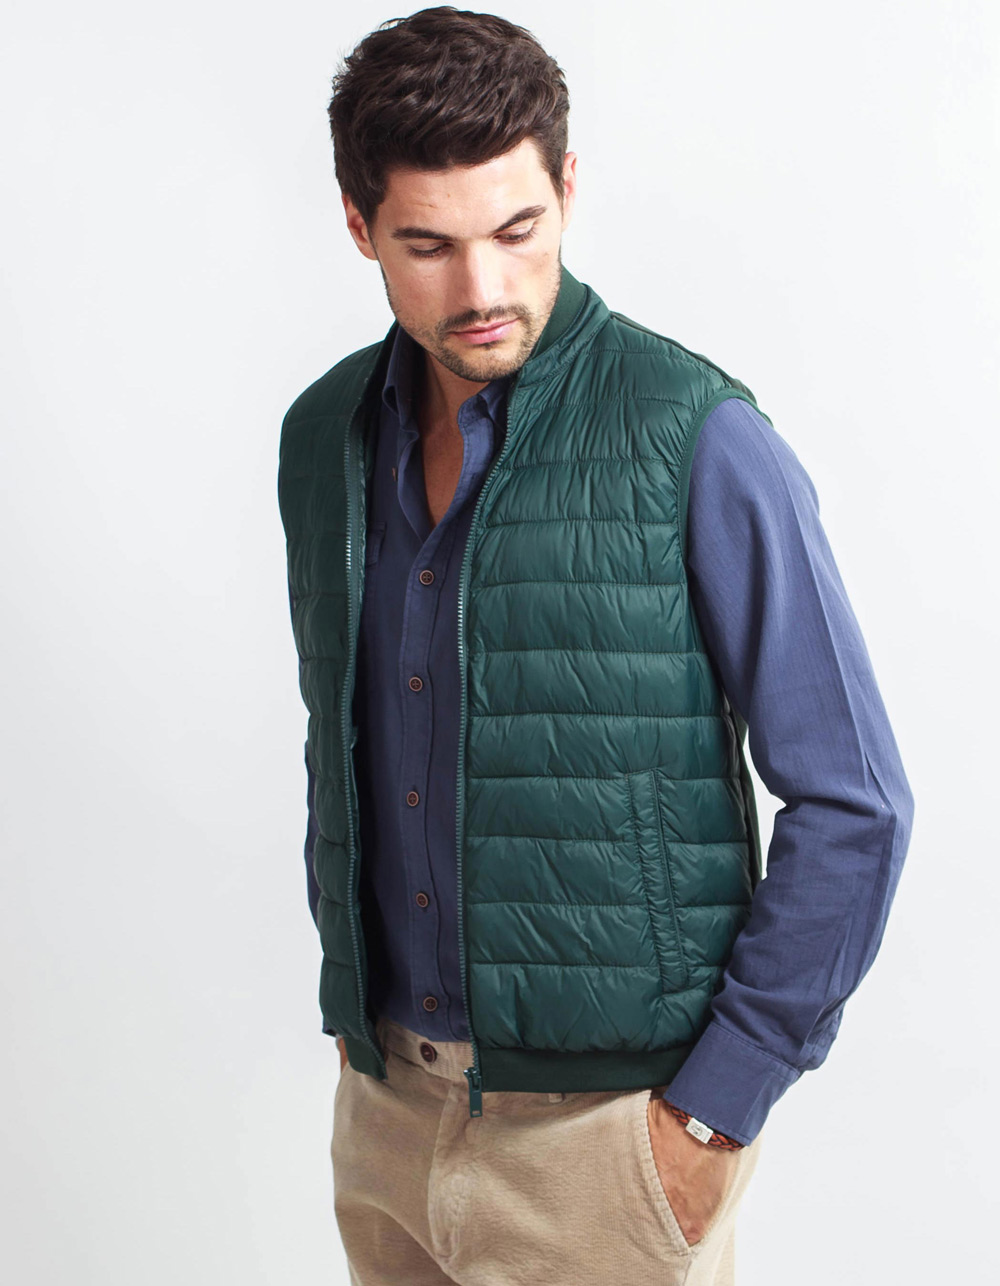 Green vest front part padded back part of point